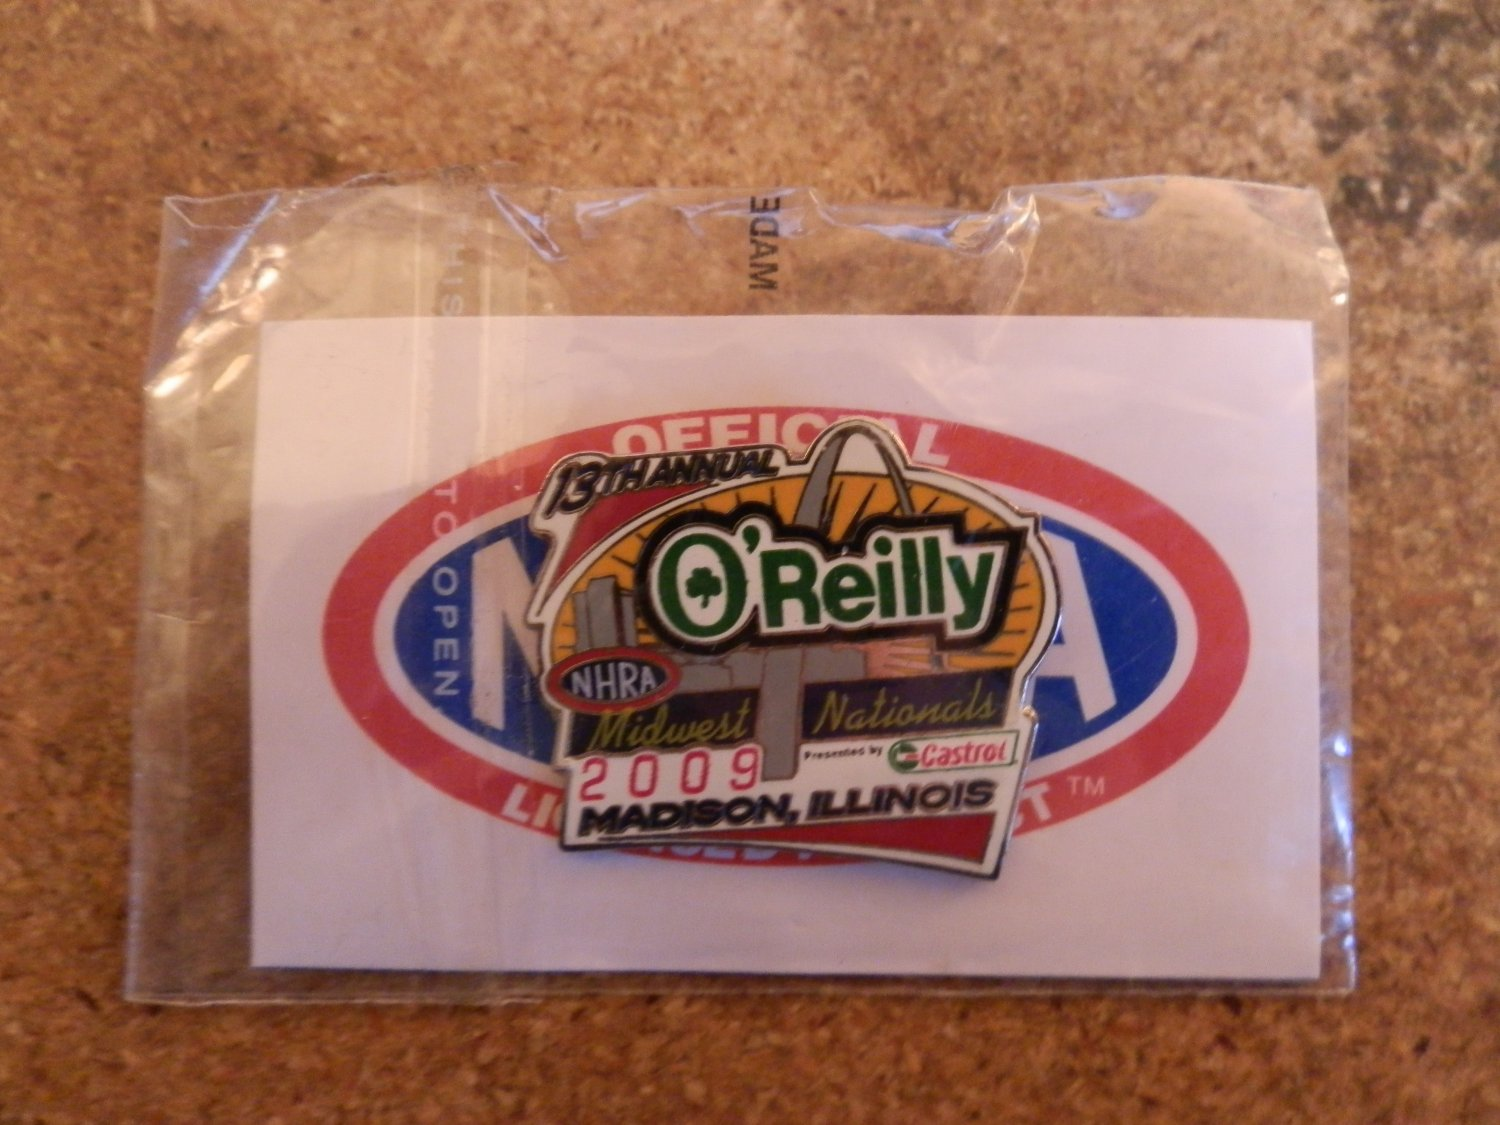 2009 NHRA Event Pin St. Louis